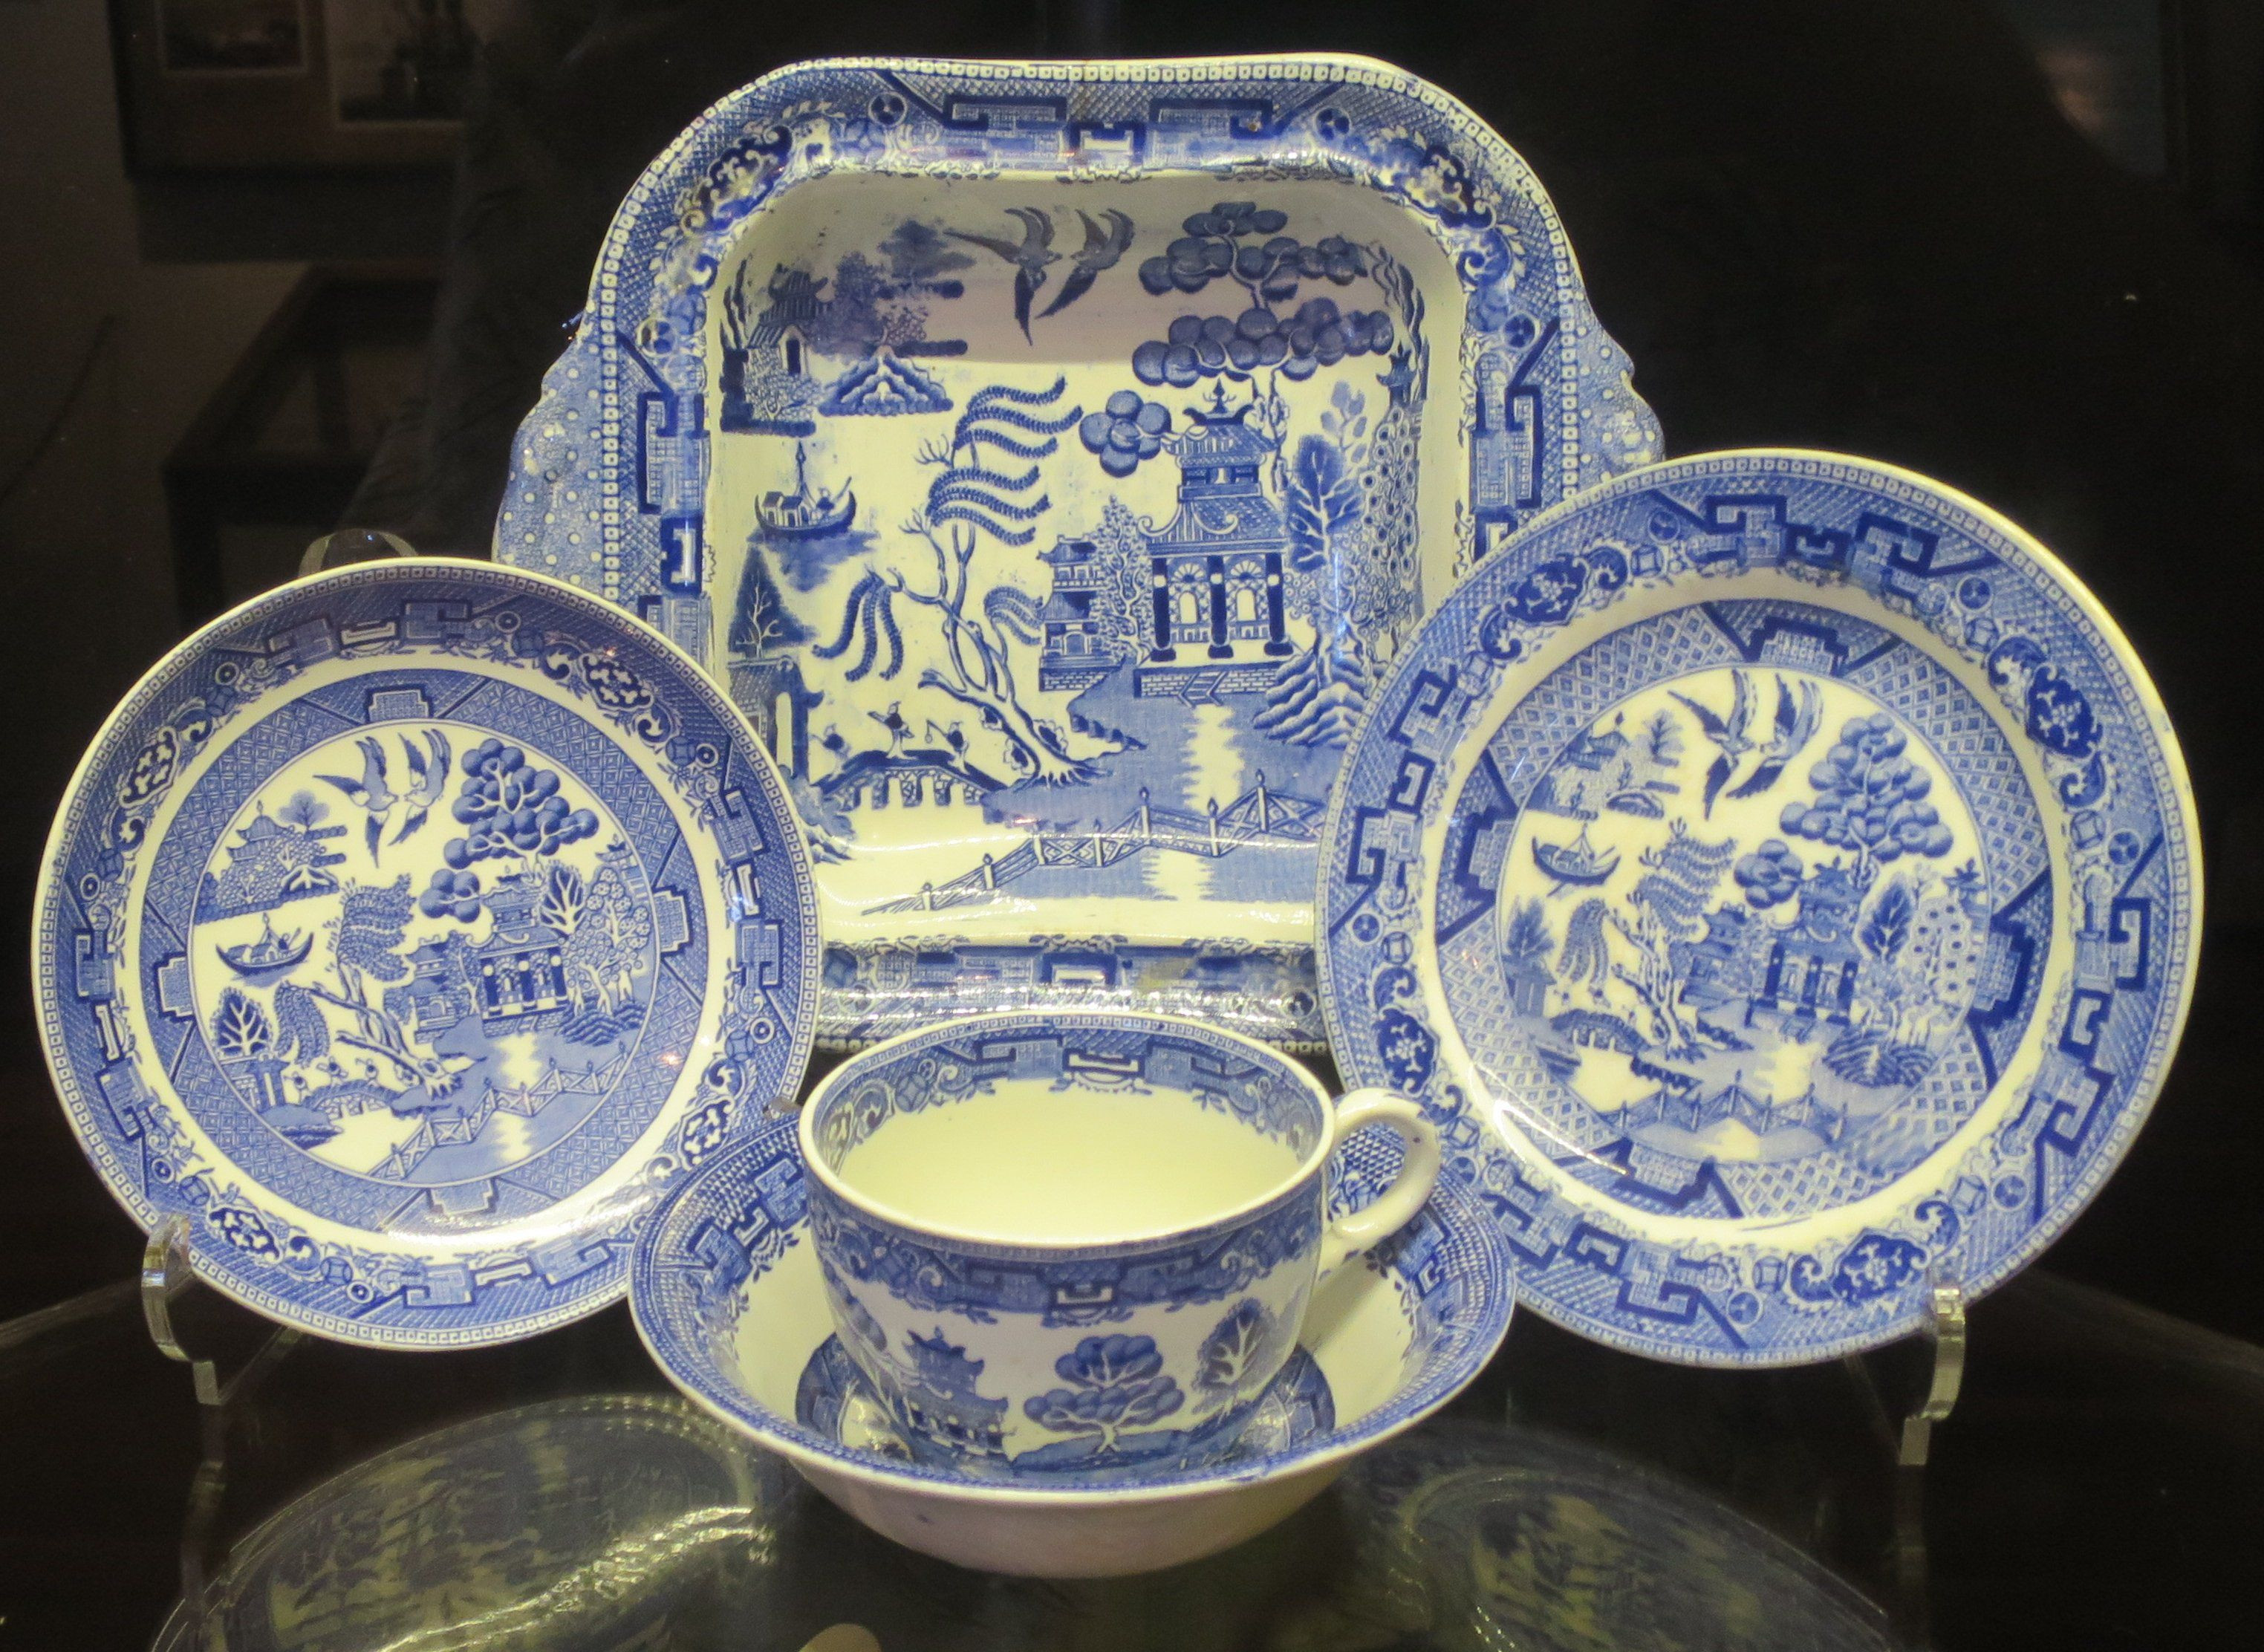 ming vase markings of chinese vase shapes fresh willow pattern the weekly world with regard to chinese vase shapes fresh willow pattern